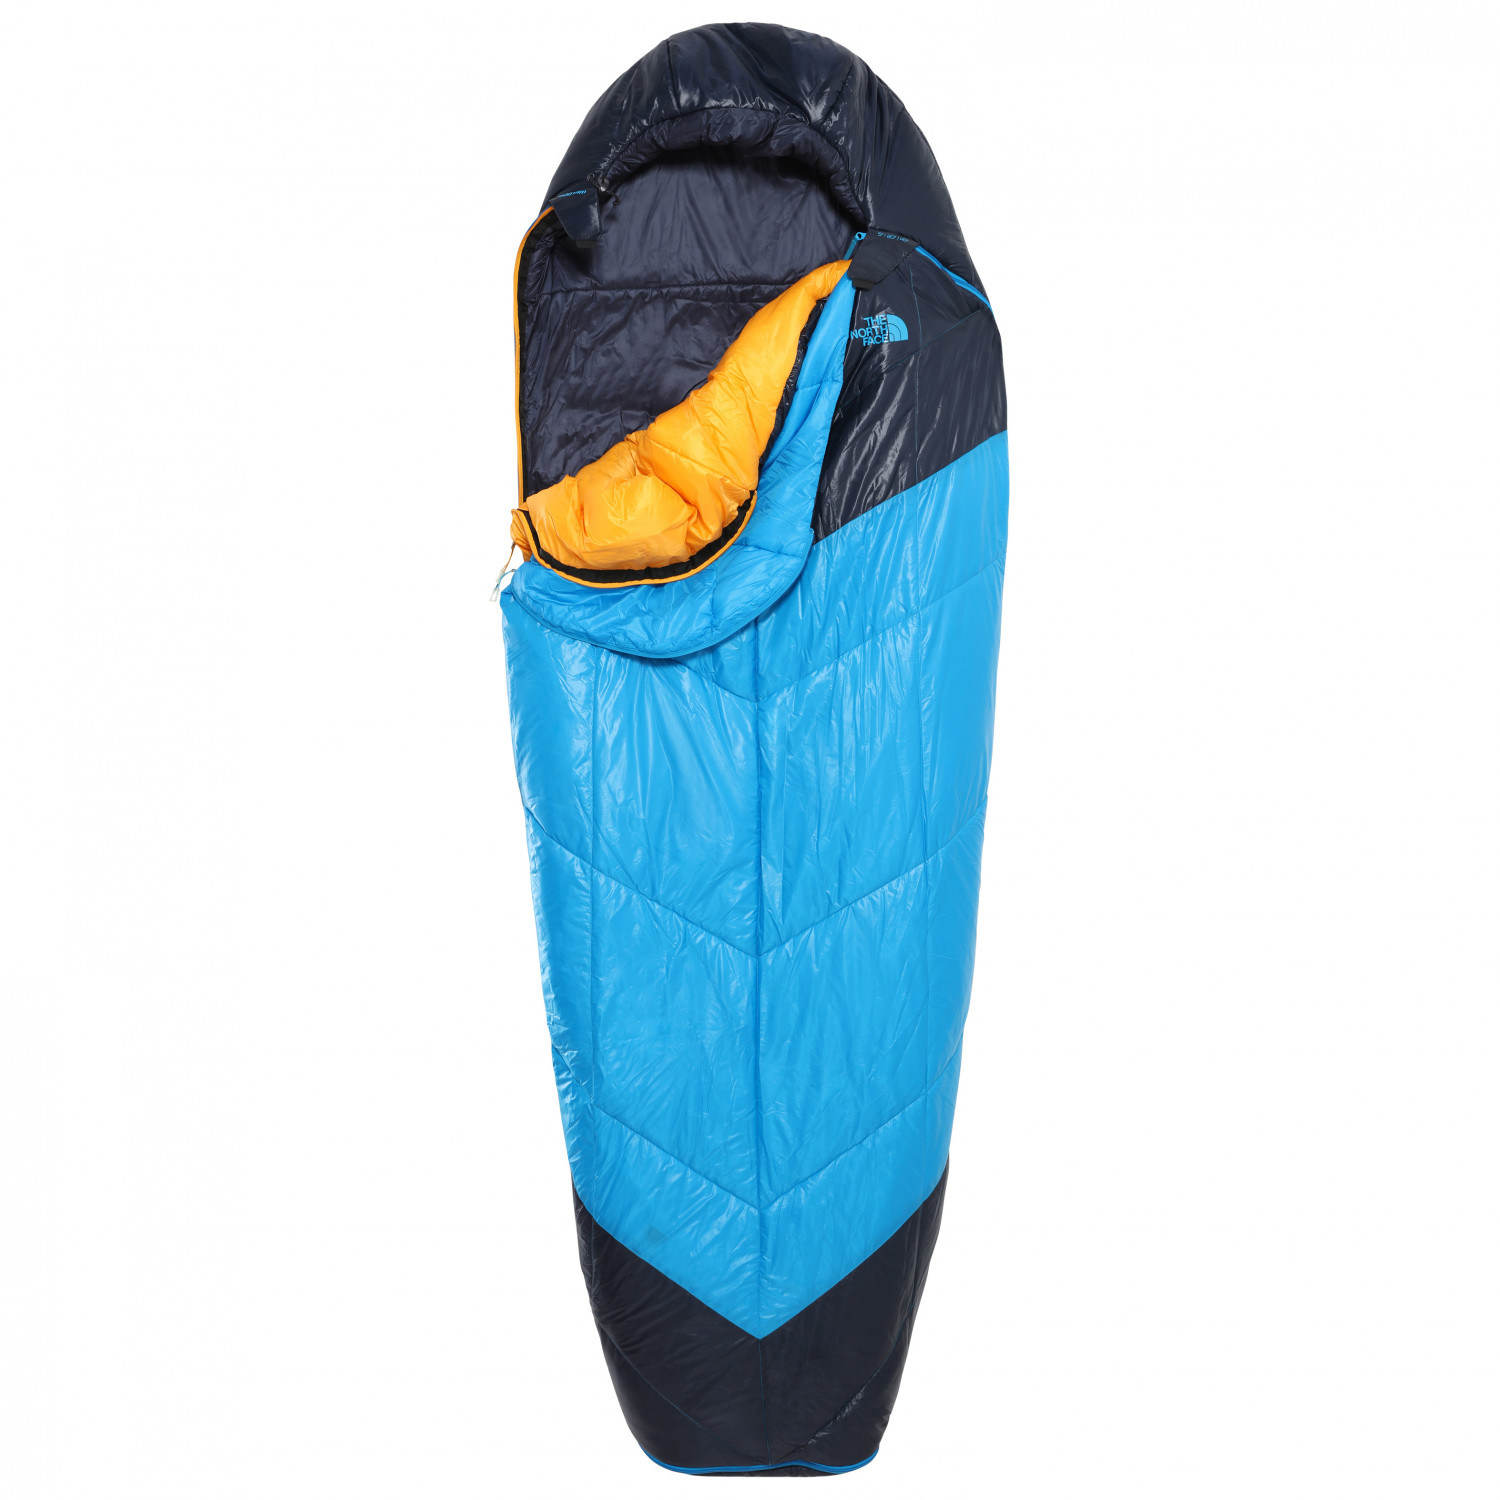 The North Face One Bag Down Sleeping